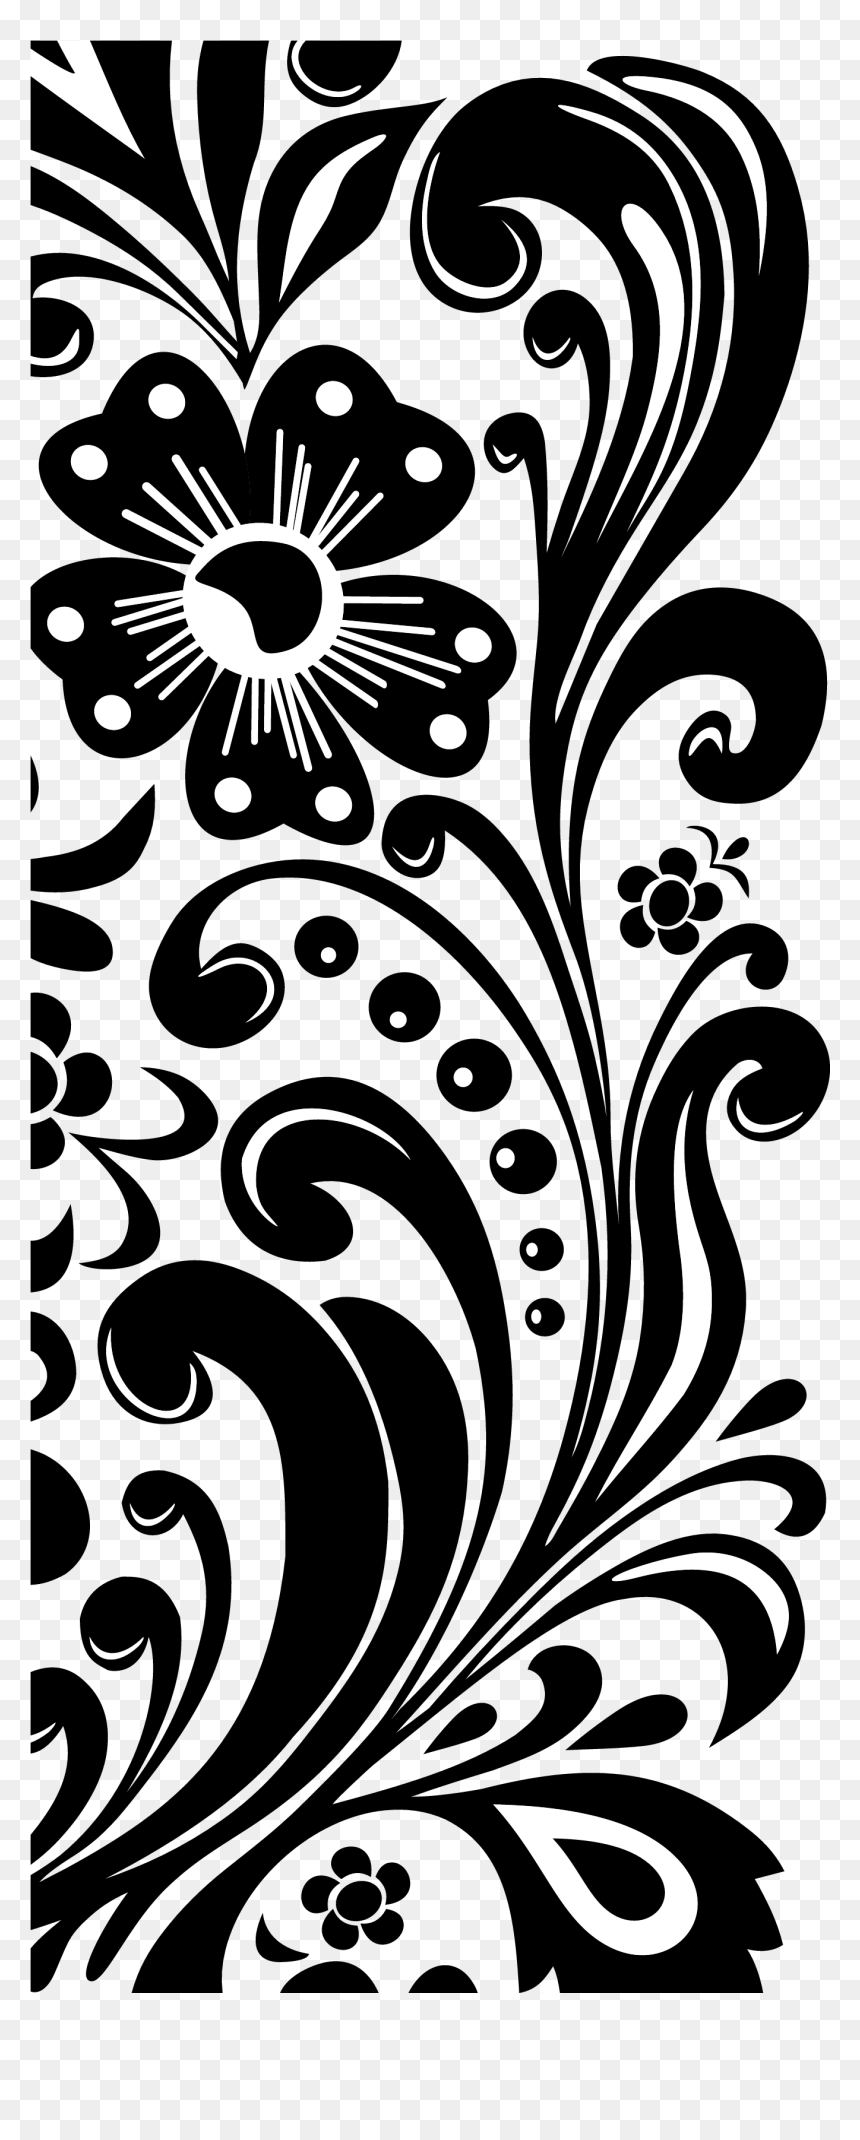 Free Black And White Flower Border, Download Free Clip Art, Free Clip Art  on Clipart Library